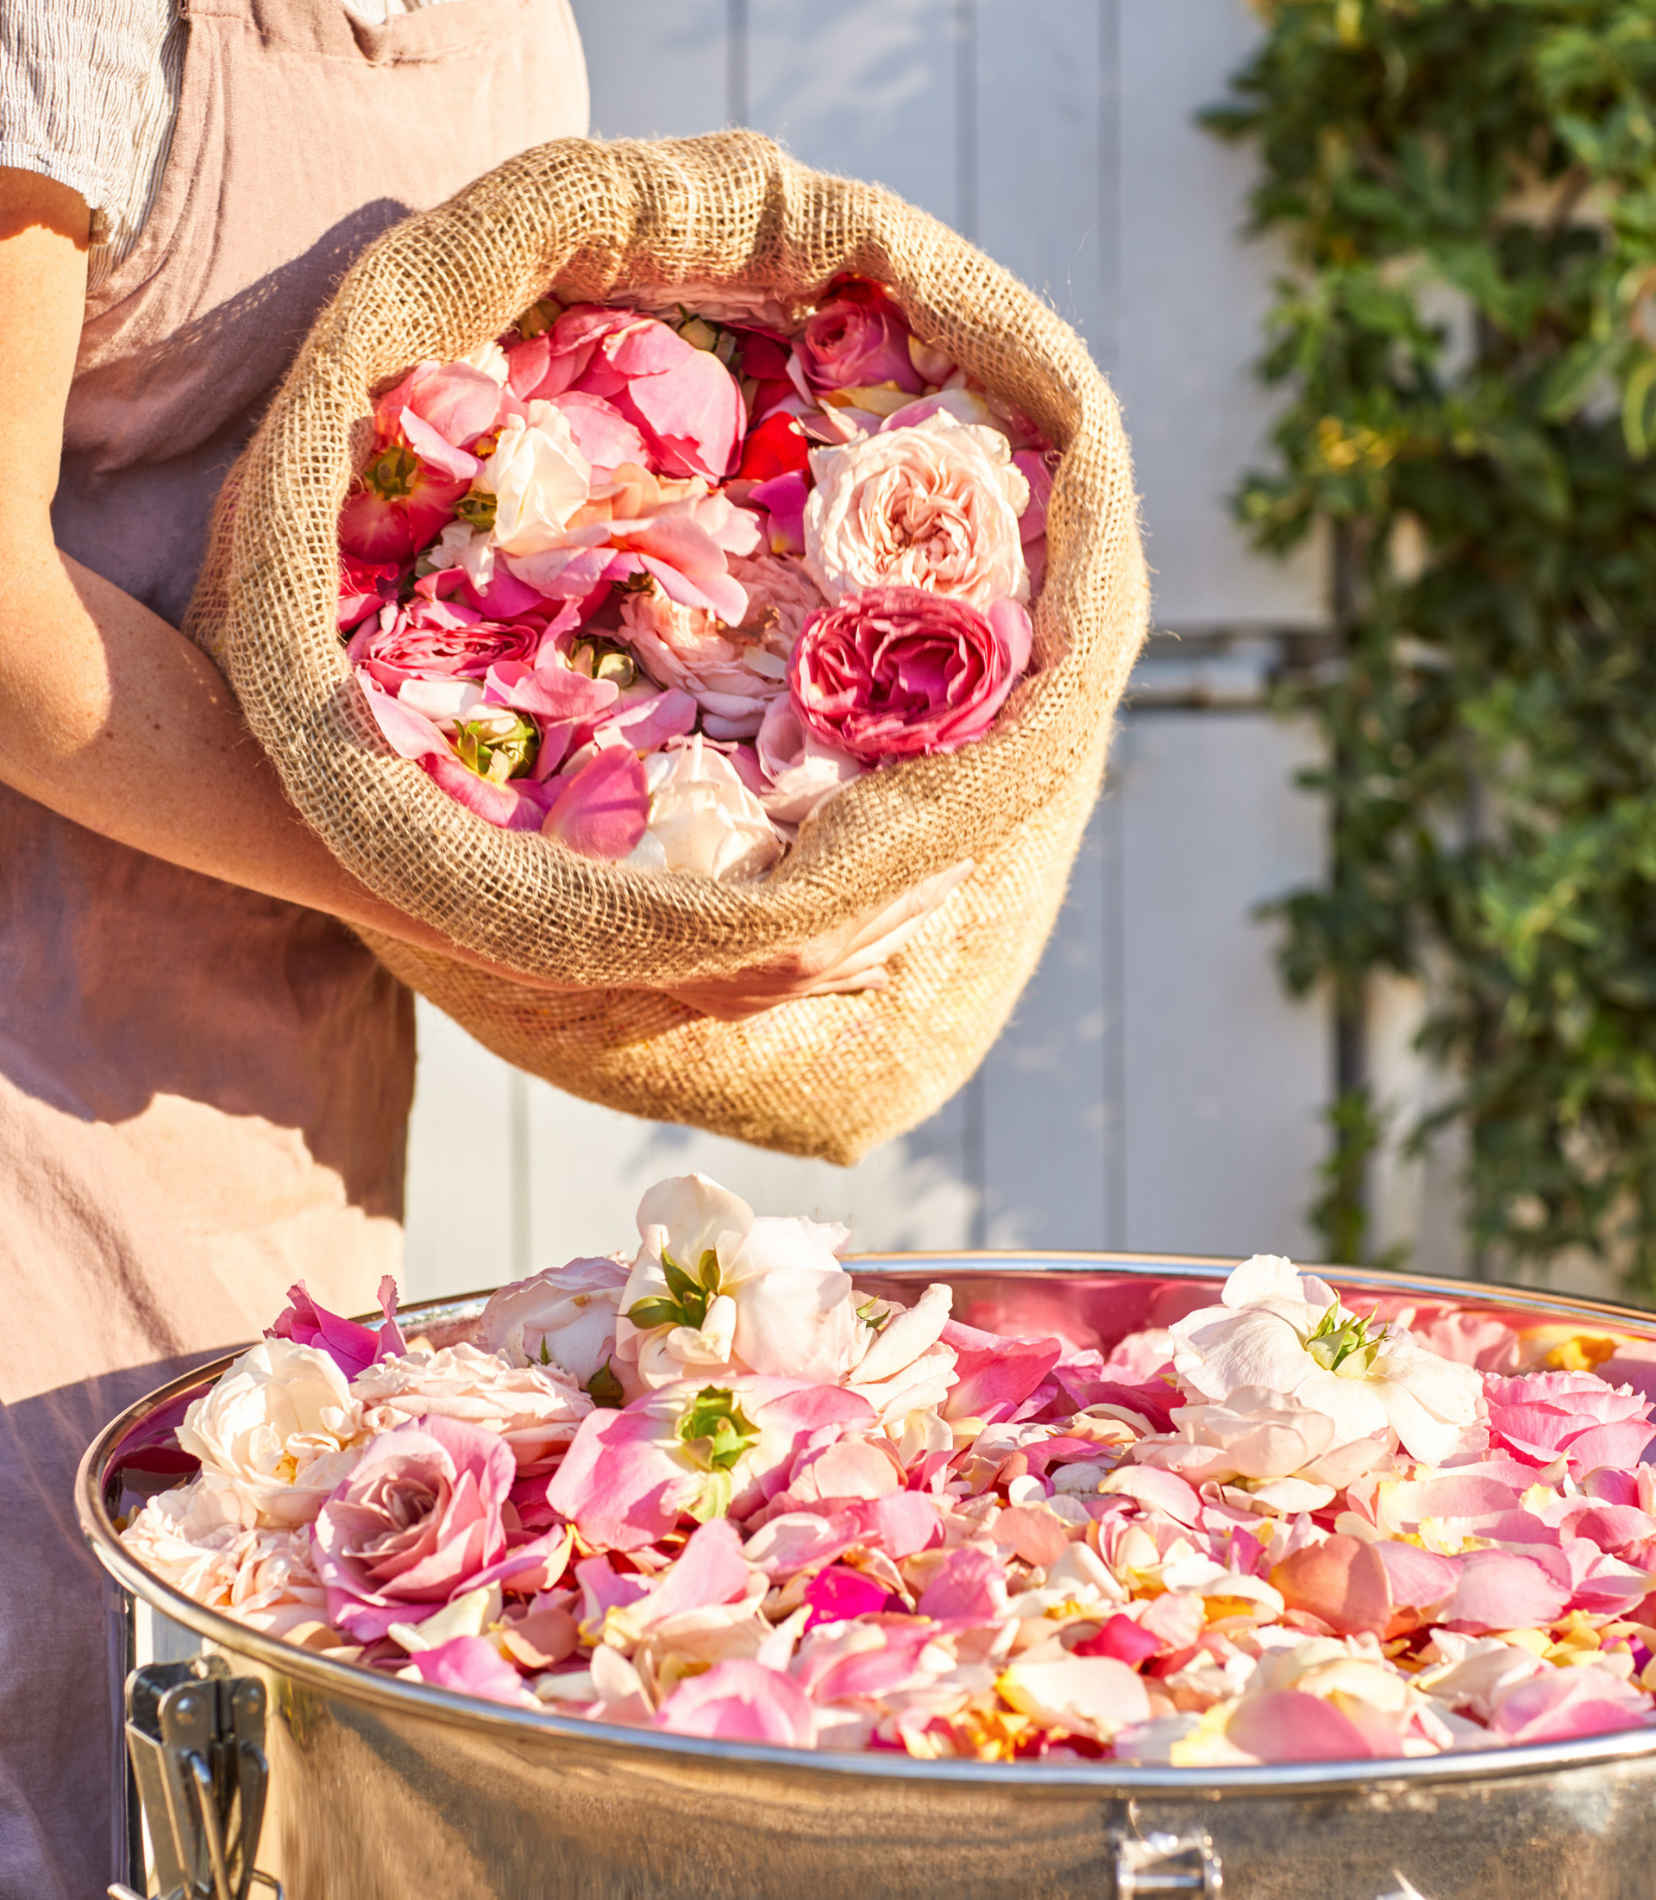 Our Journey to Handcrafted Rose Water